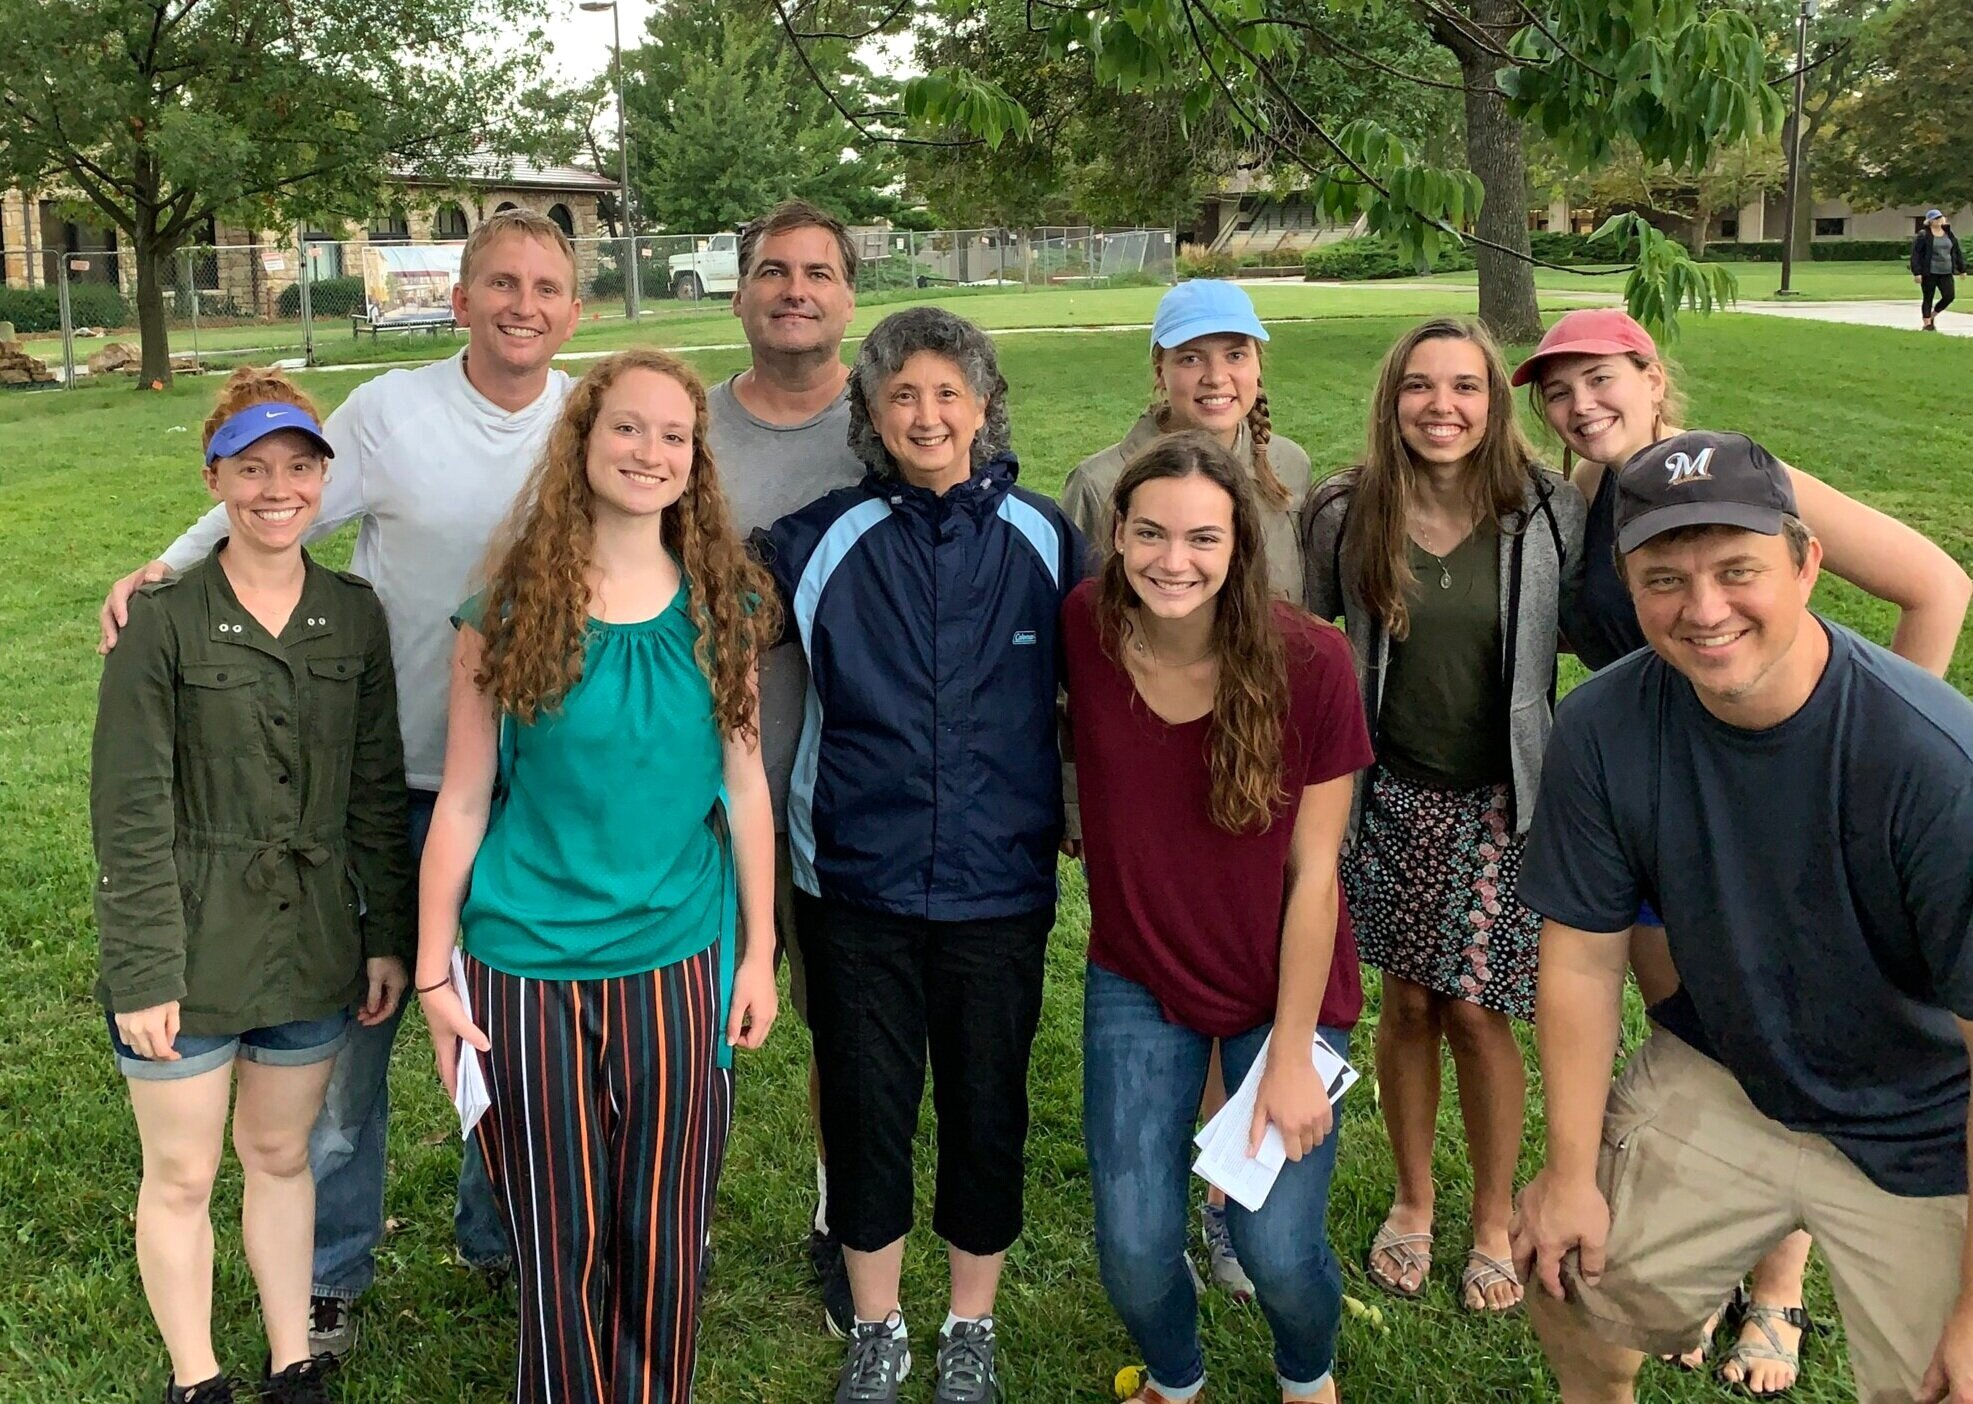 Thursday (KU): JFA staff members and volunteers paused for a quick photo at the end of our second outreach day at KU. Among them are three Benedictine students who traveled more than an hour each way to spend about an hour at KU with our team.